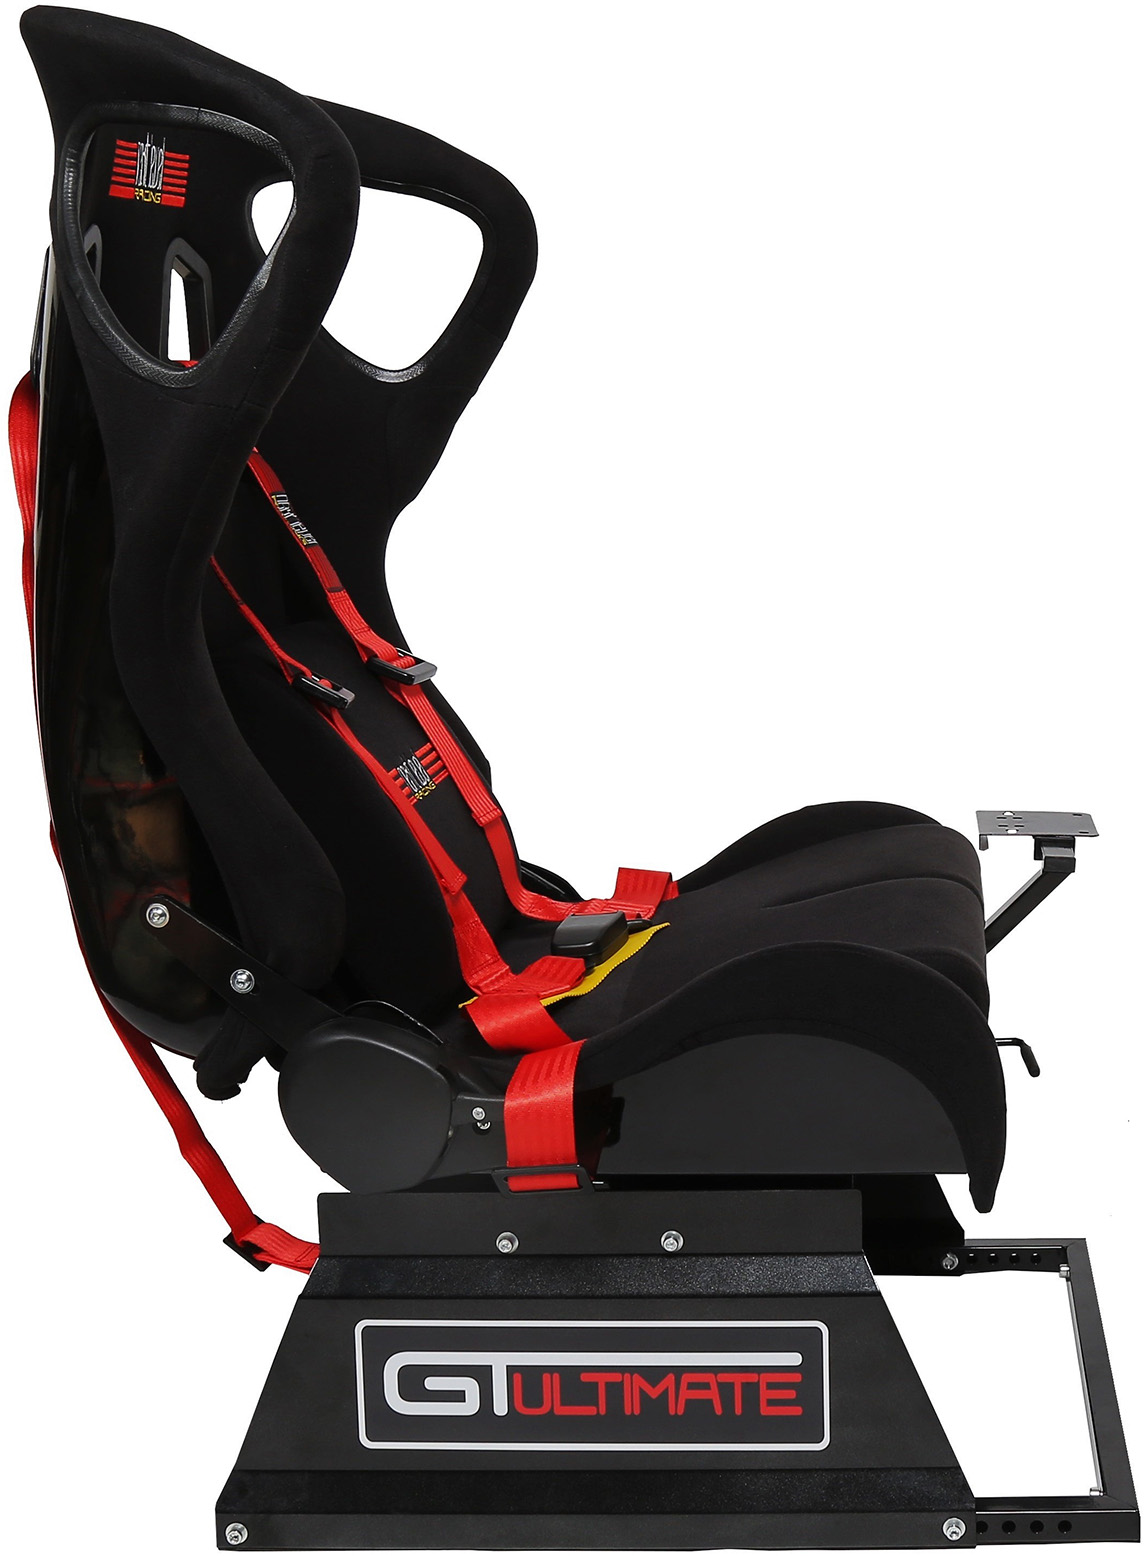 RWiAsK?ver=6c3a - Next Level Racing Seat Add-On